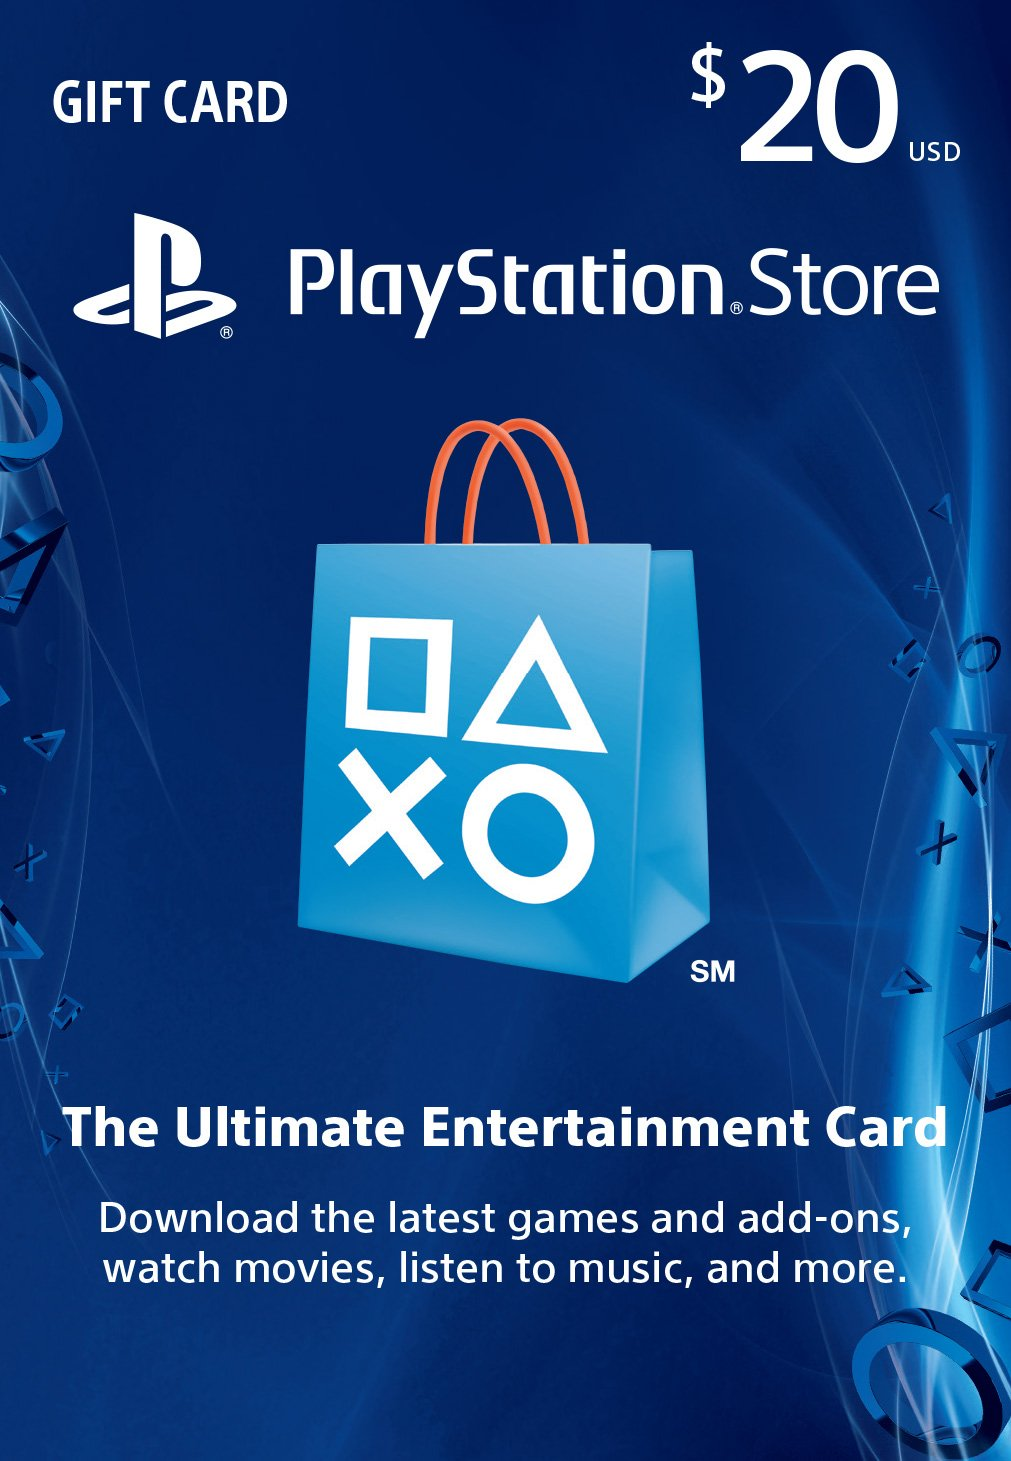 What You Need to Do In return for Free PSN Codes